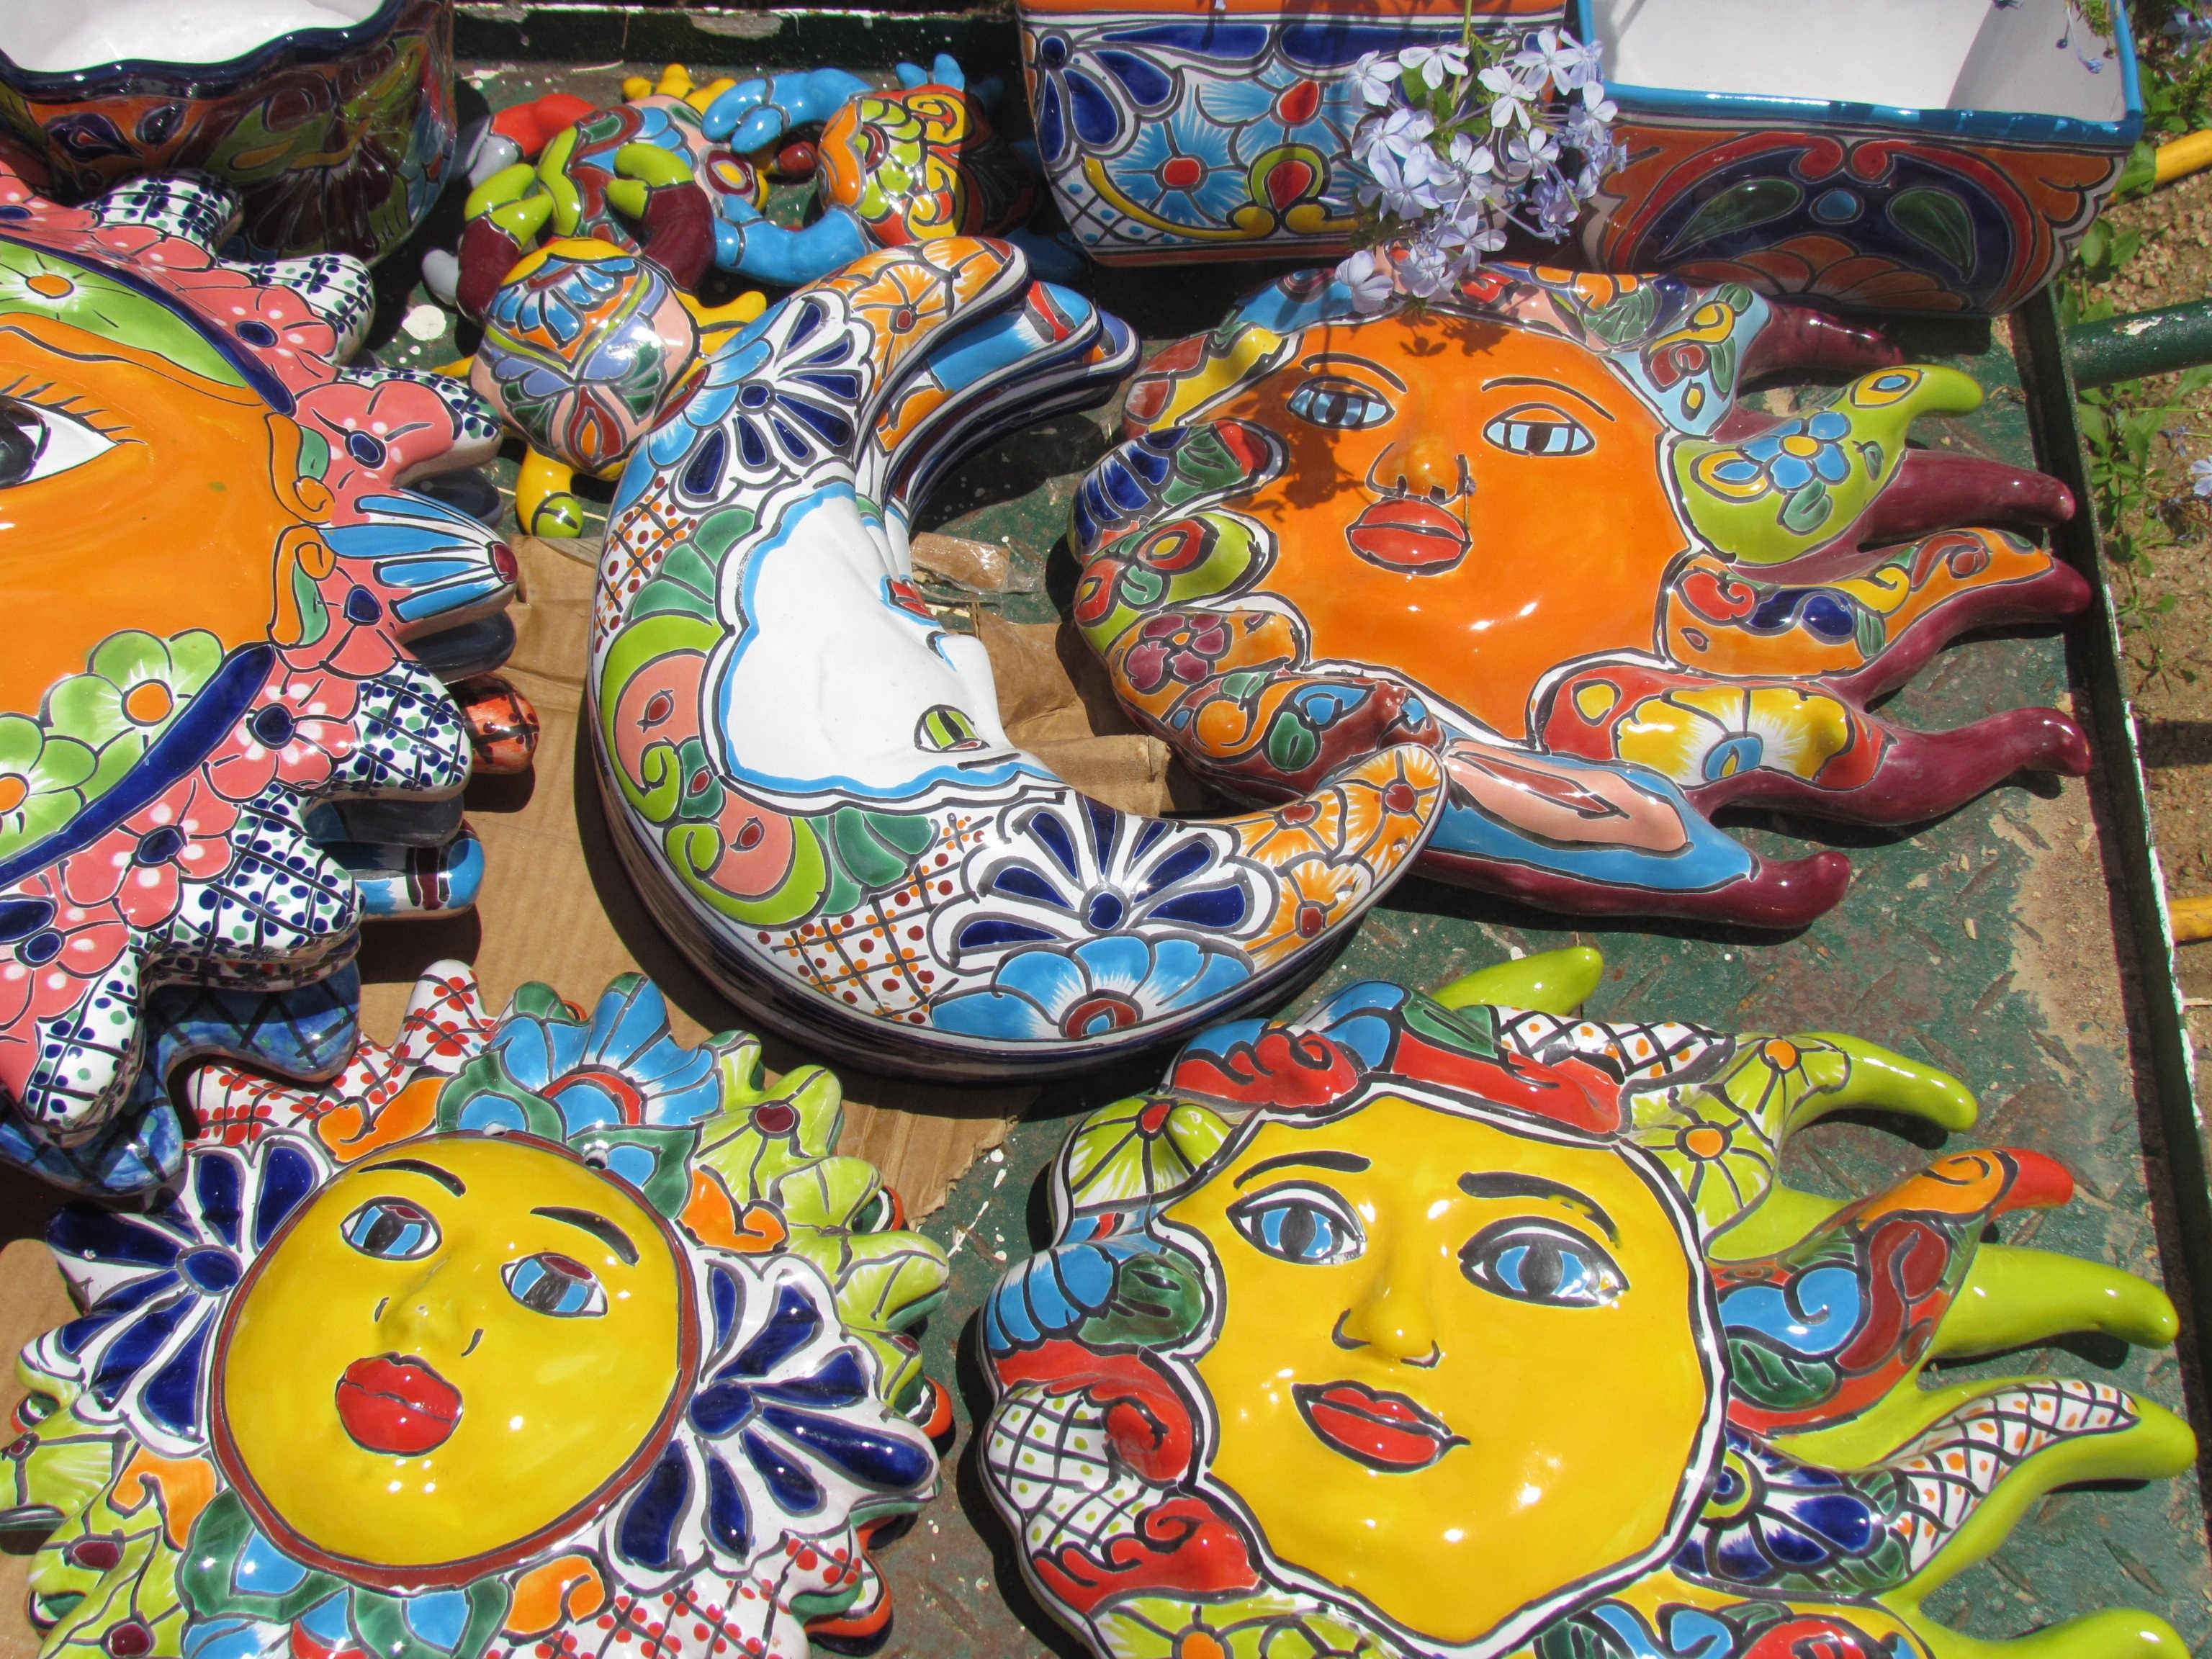 Talavera yard decor at J&J Nursery, Spring, TX